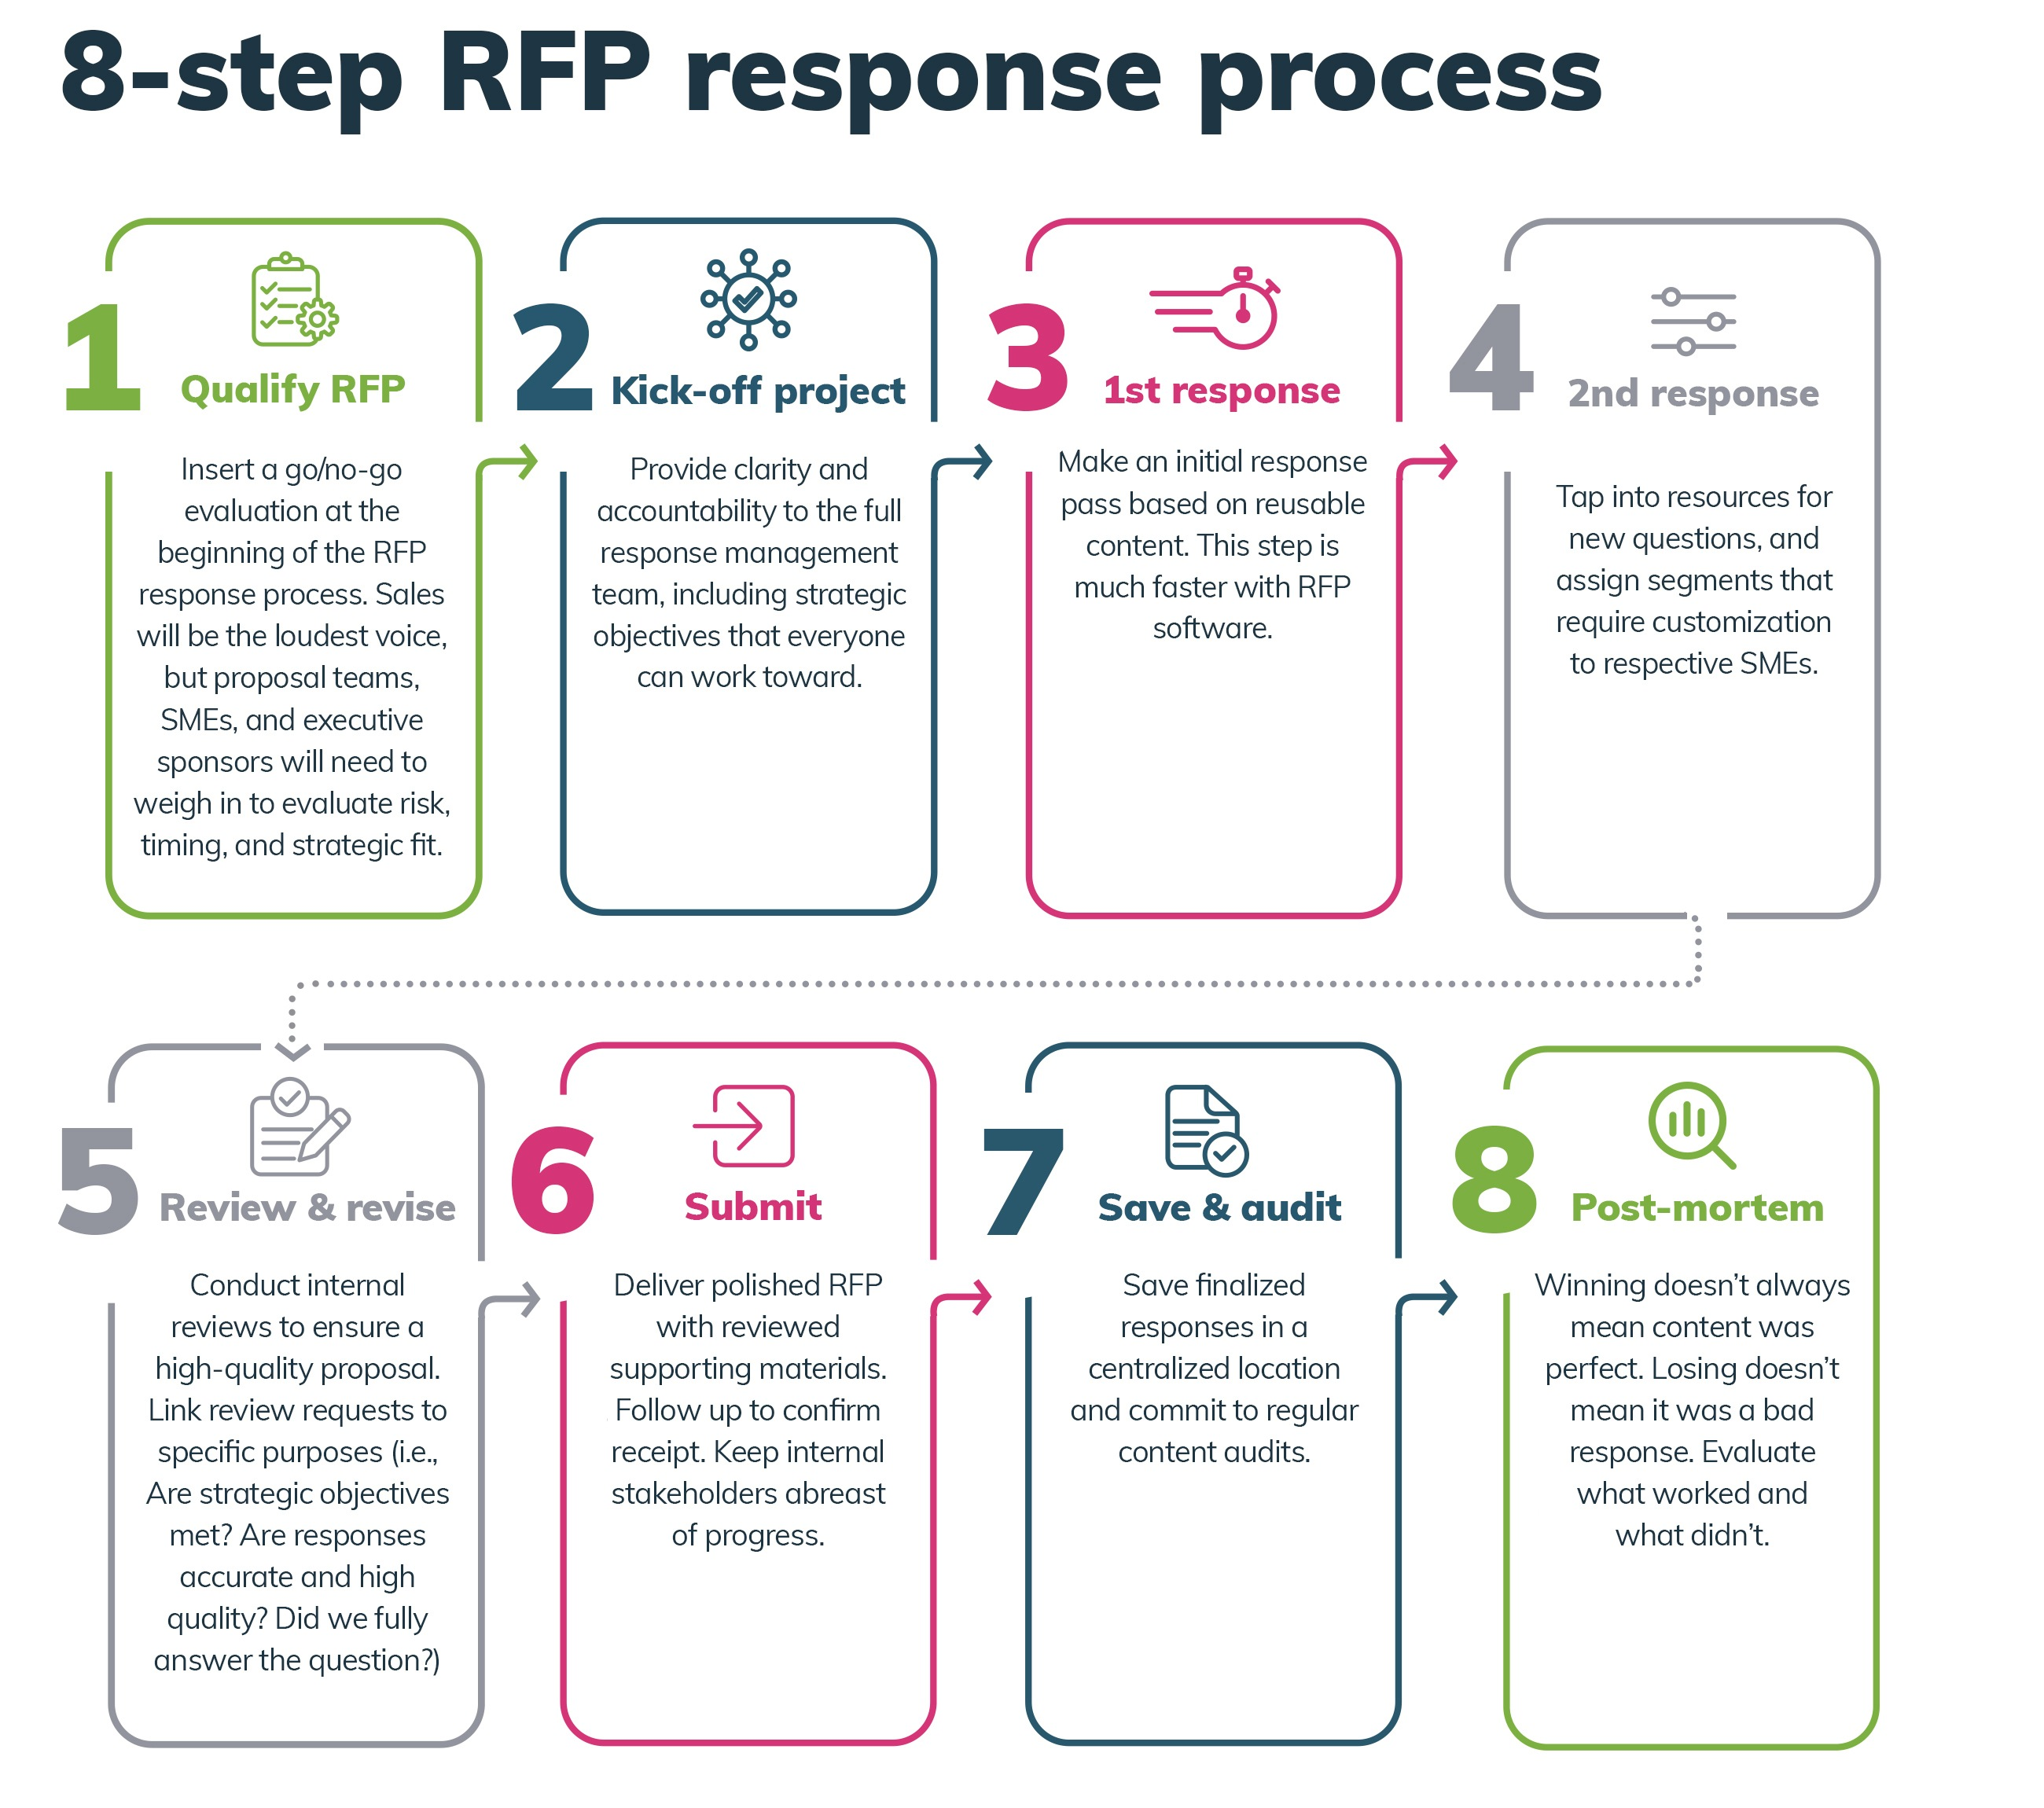 RFP process and steps